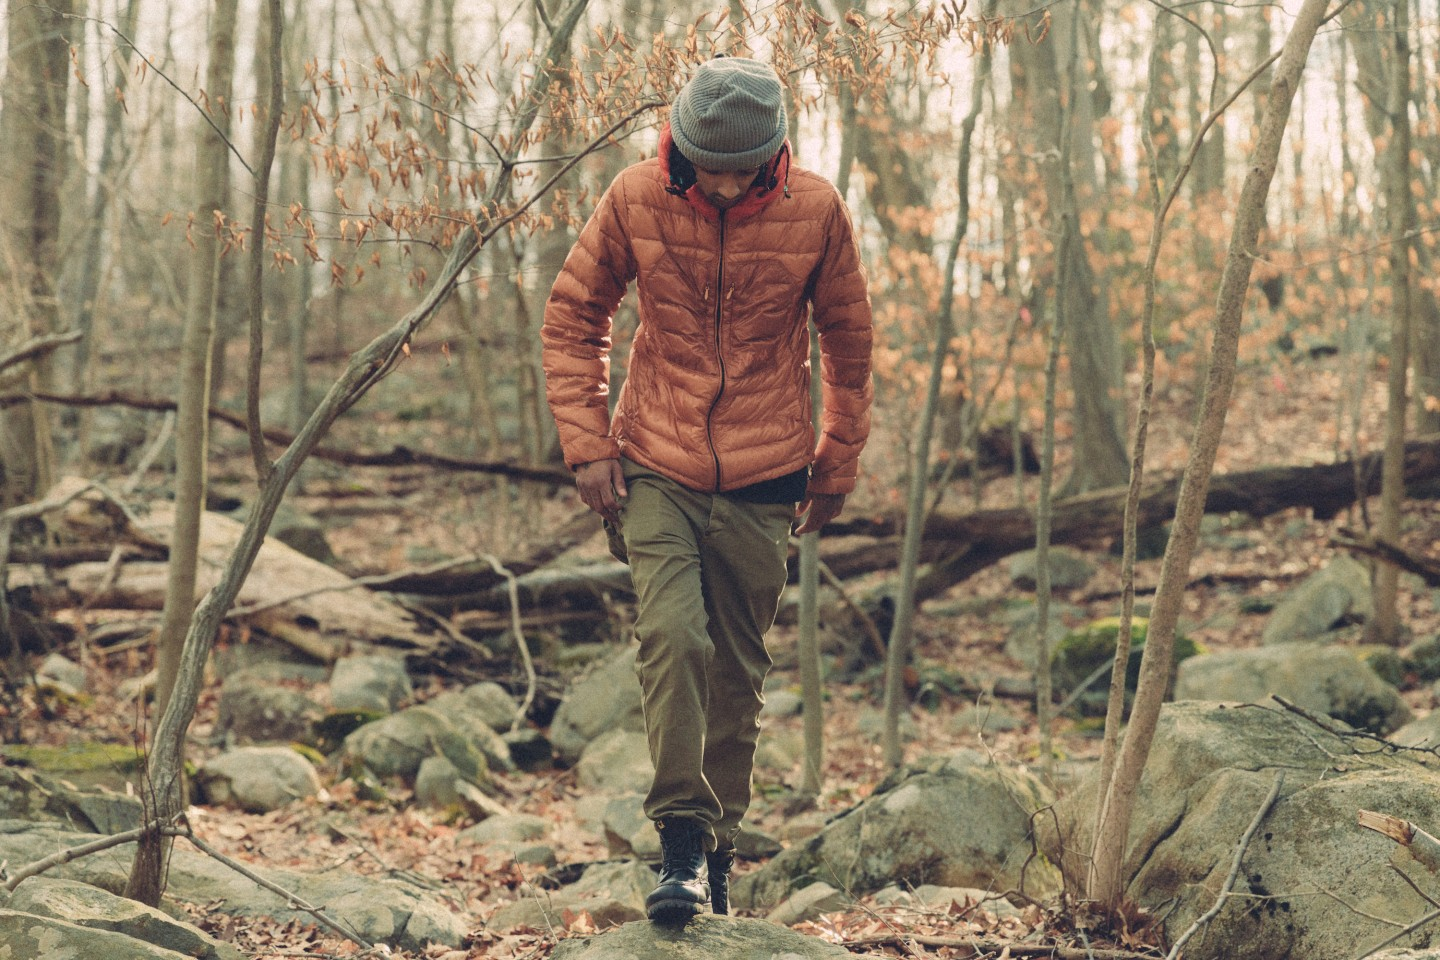 Move with purpose: Functional outerwear that works with you